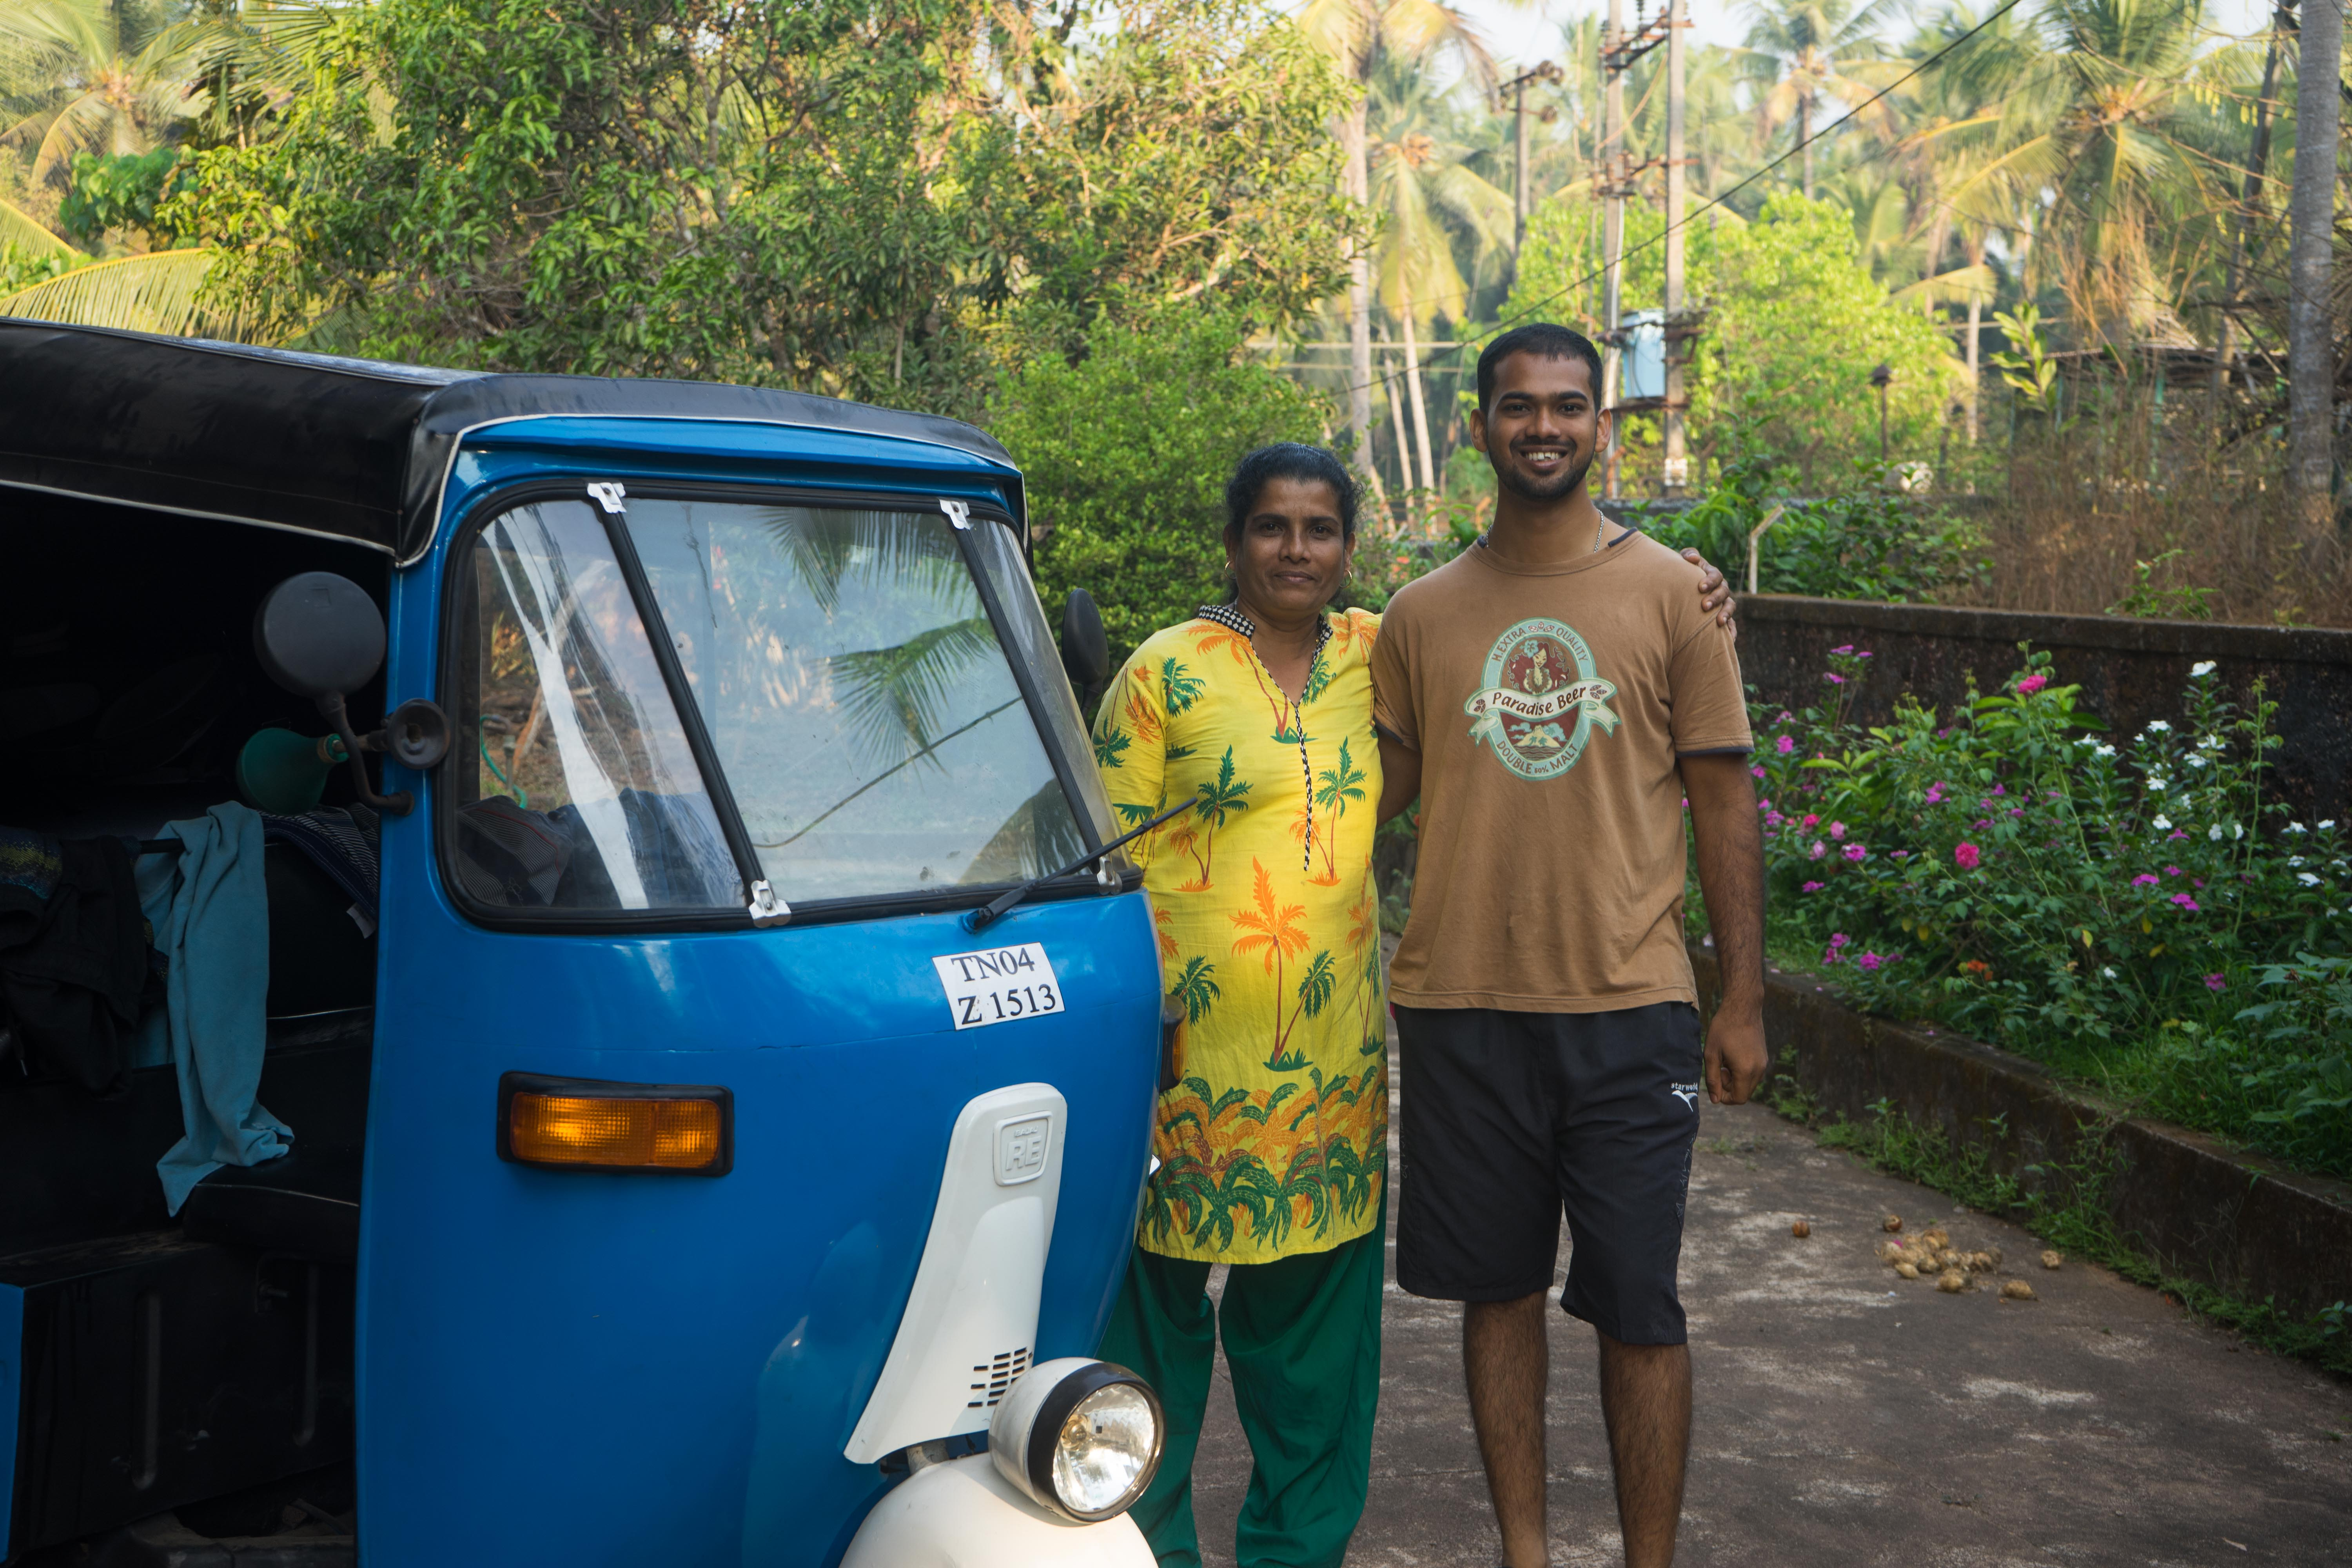 Jayson, our Couchsurfing host in Mangalore, India, and his auntie standing besides our tuk tuk